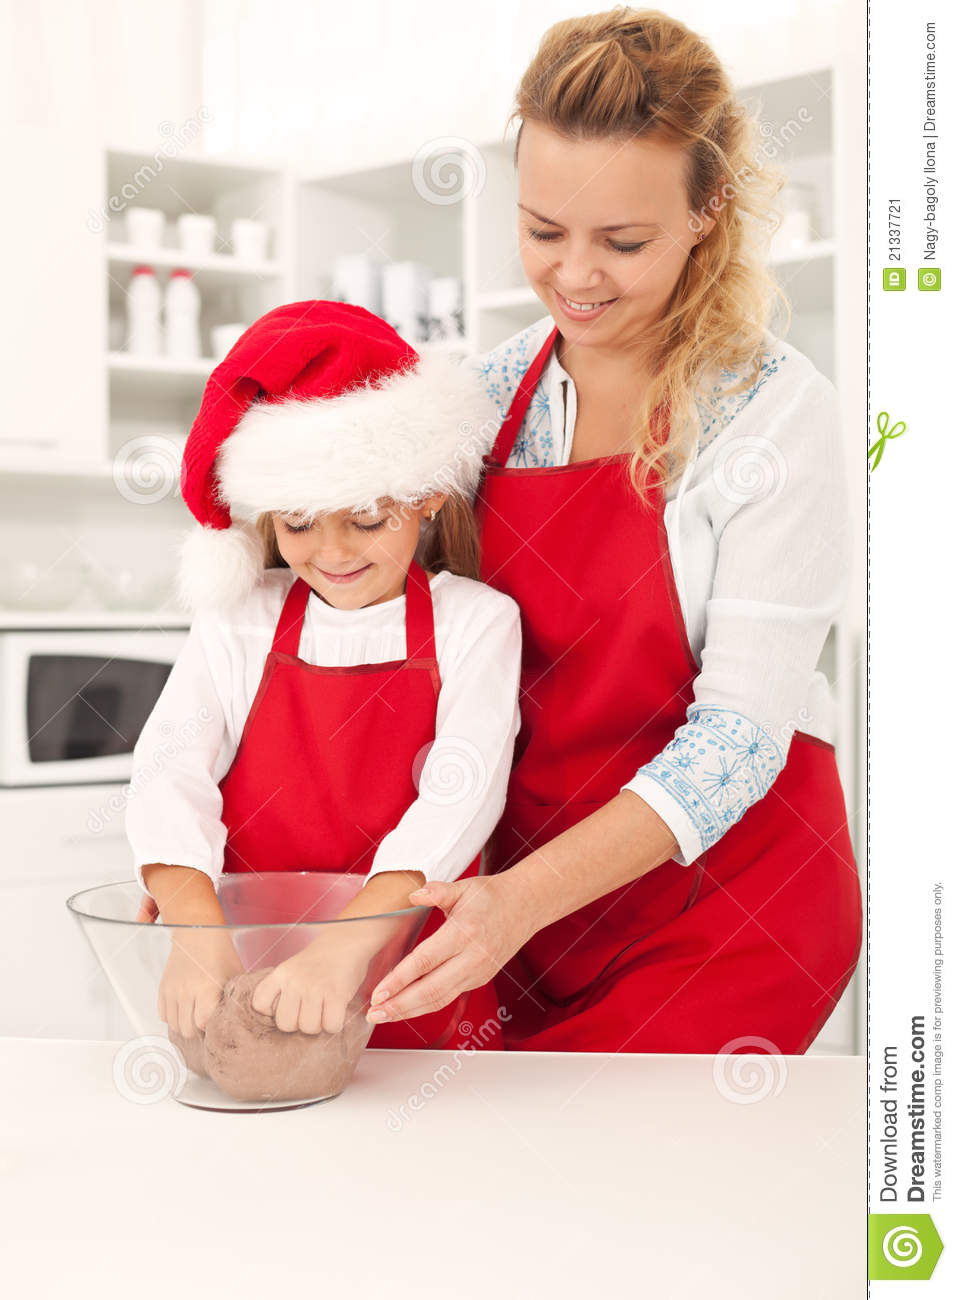 Preparing the cookie dough at christmas time